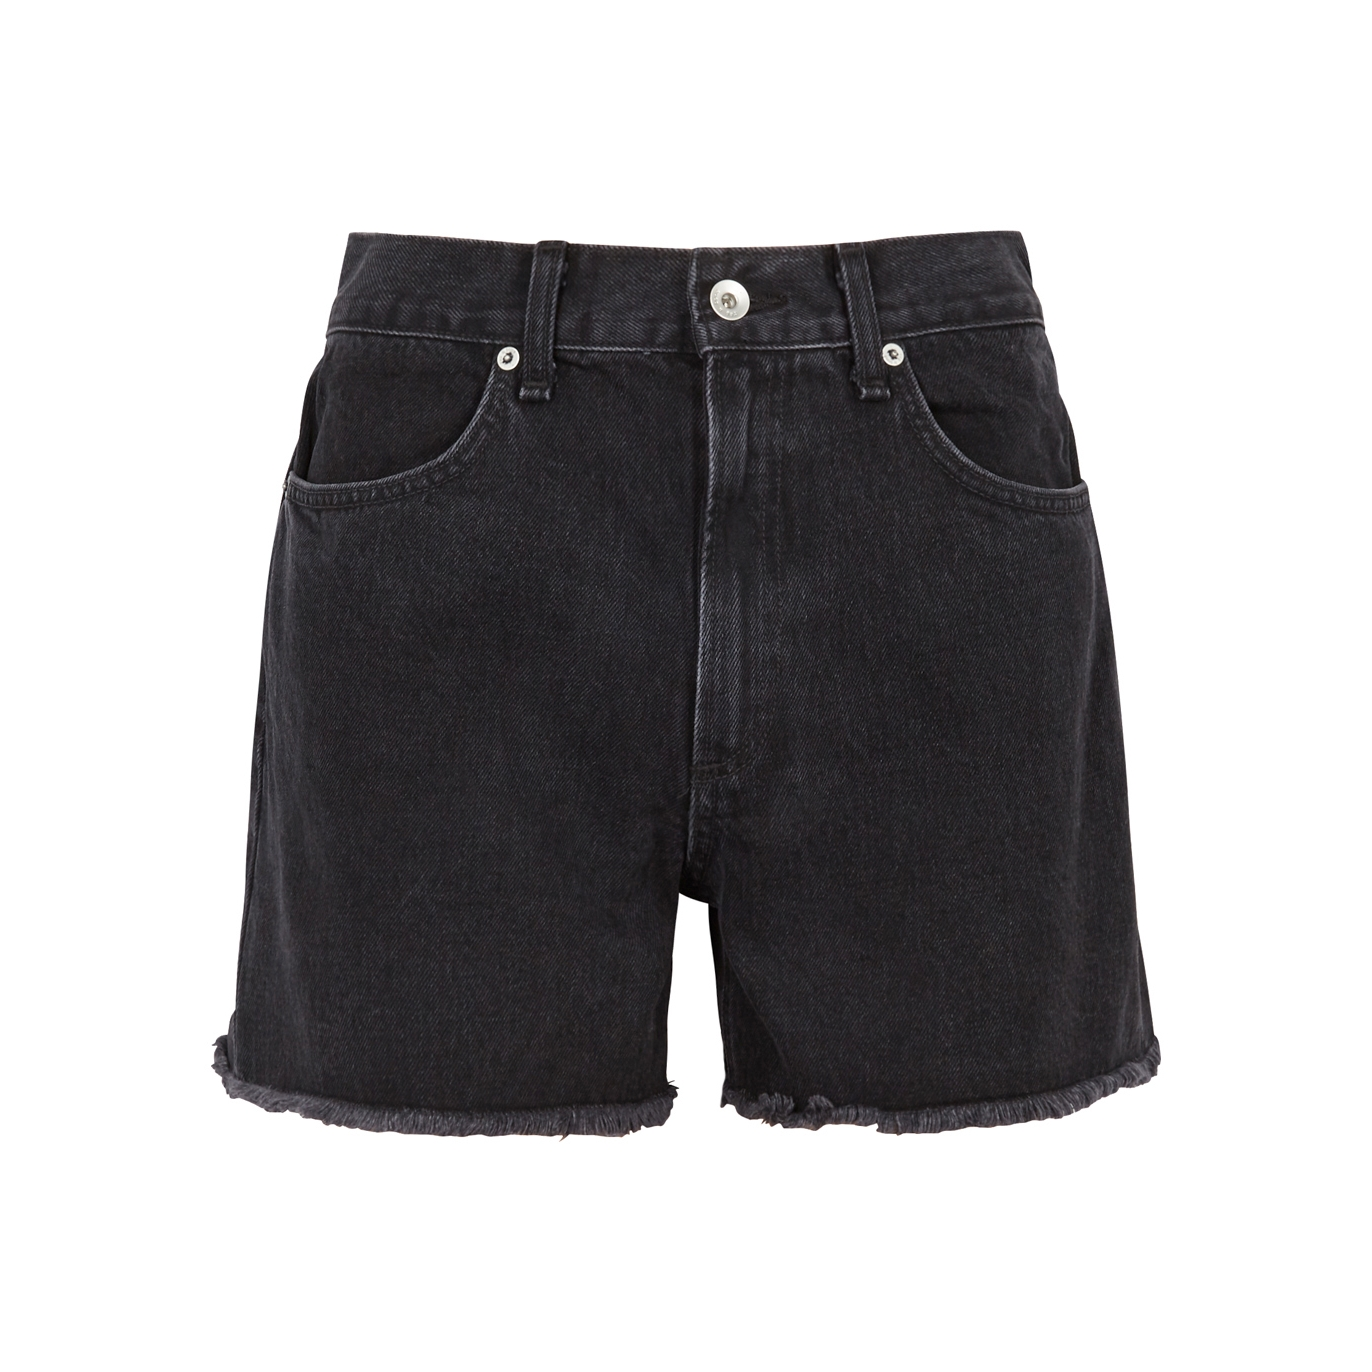 1e26f4a8d1 rag & bone Torti black frayed denim shorts - Harvey Nichols